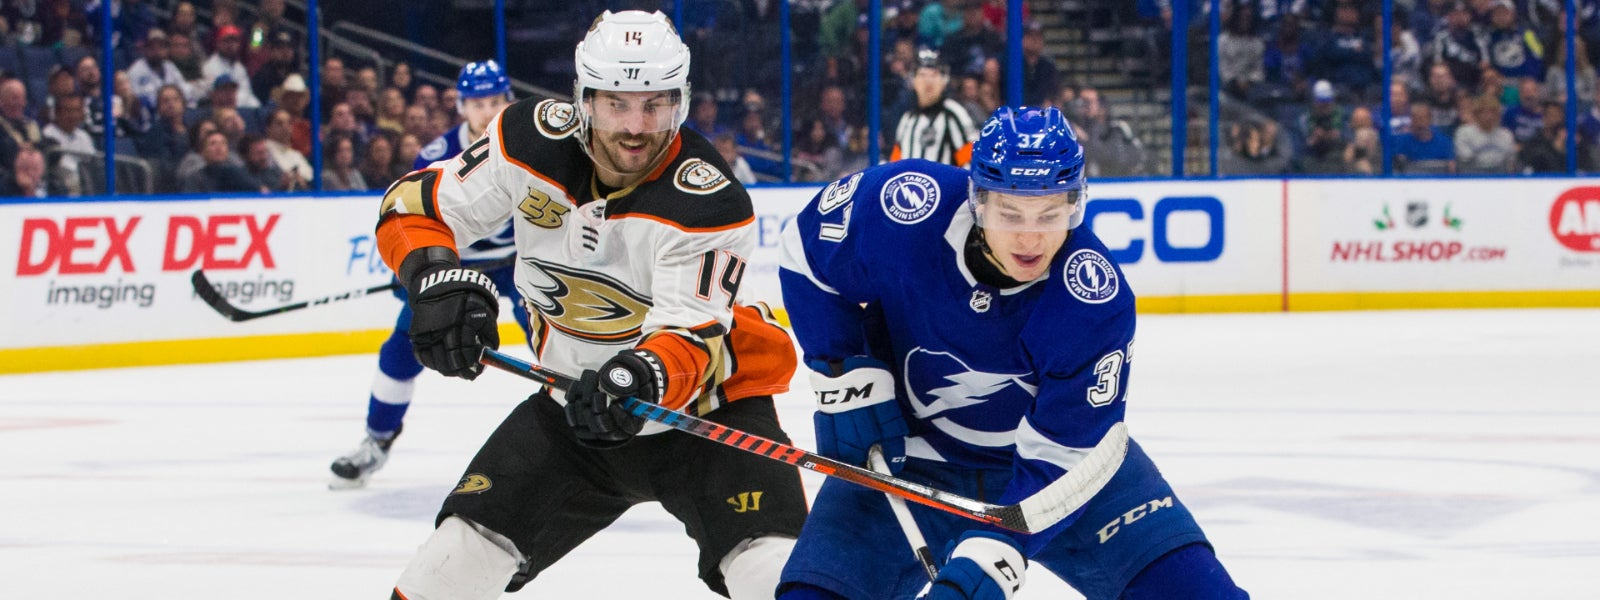 Tampa Bay Lightning vs. Anaheim Ducks